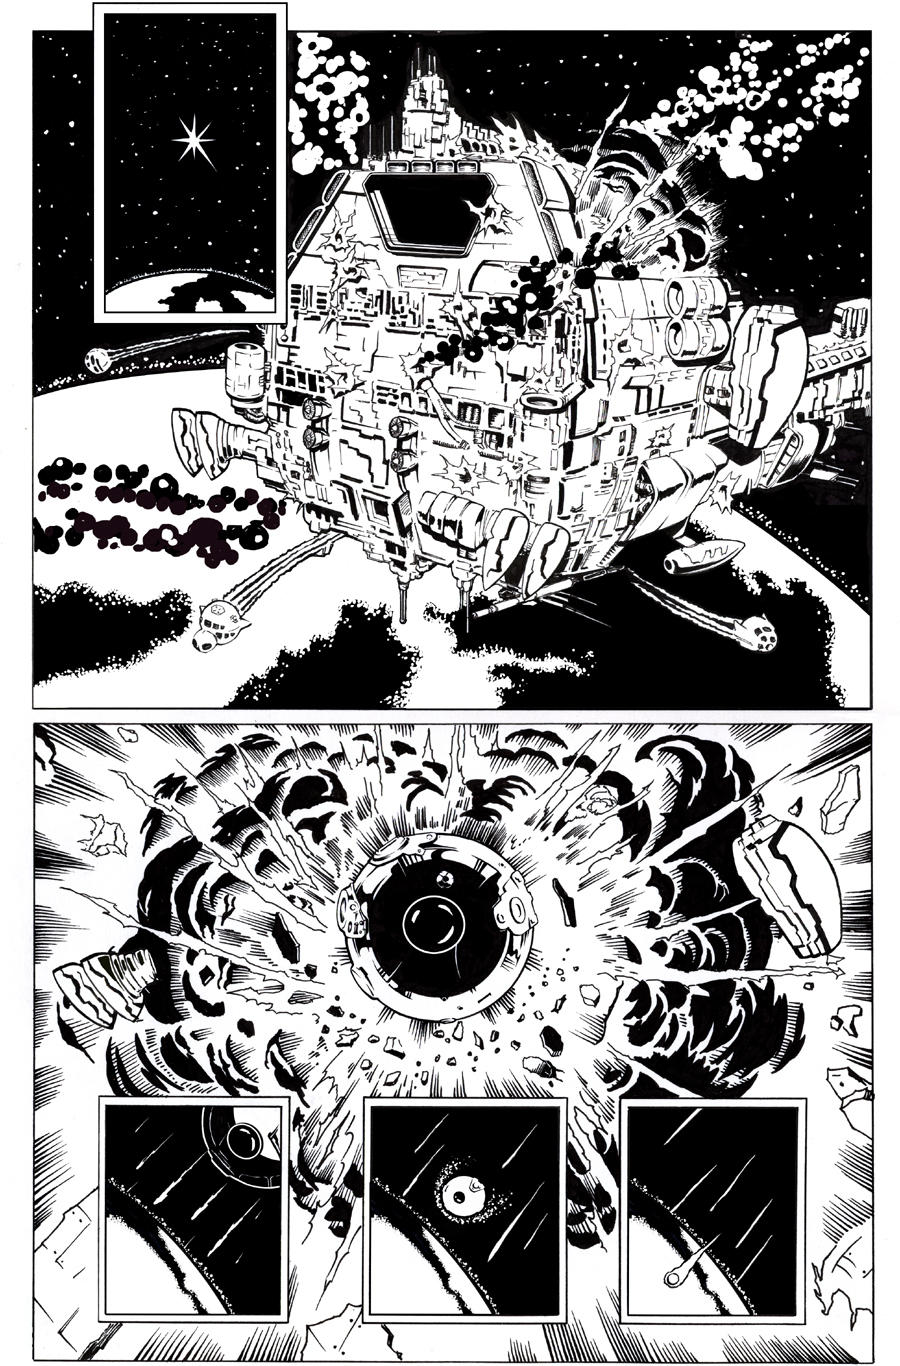 Space Explosion Inks by Bienvenu